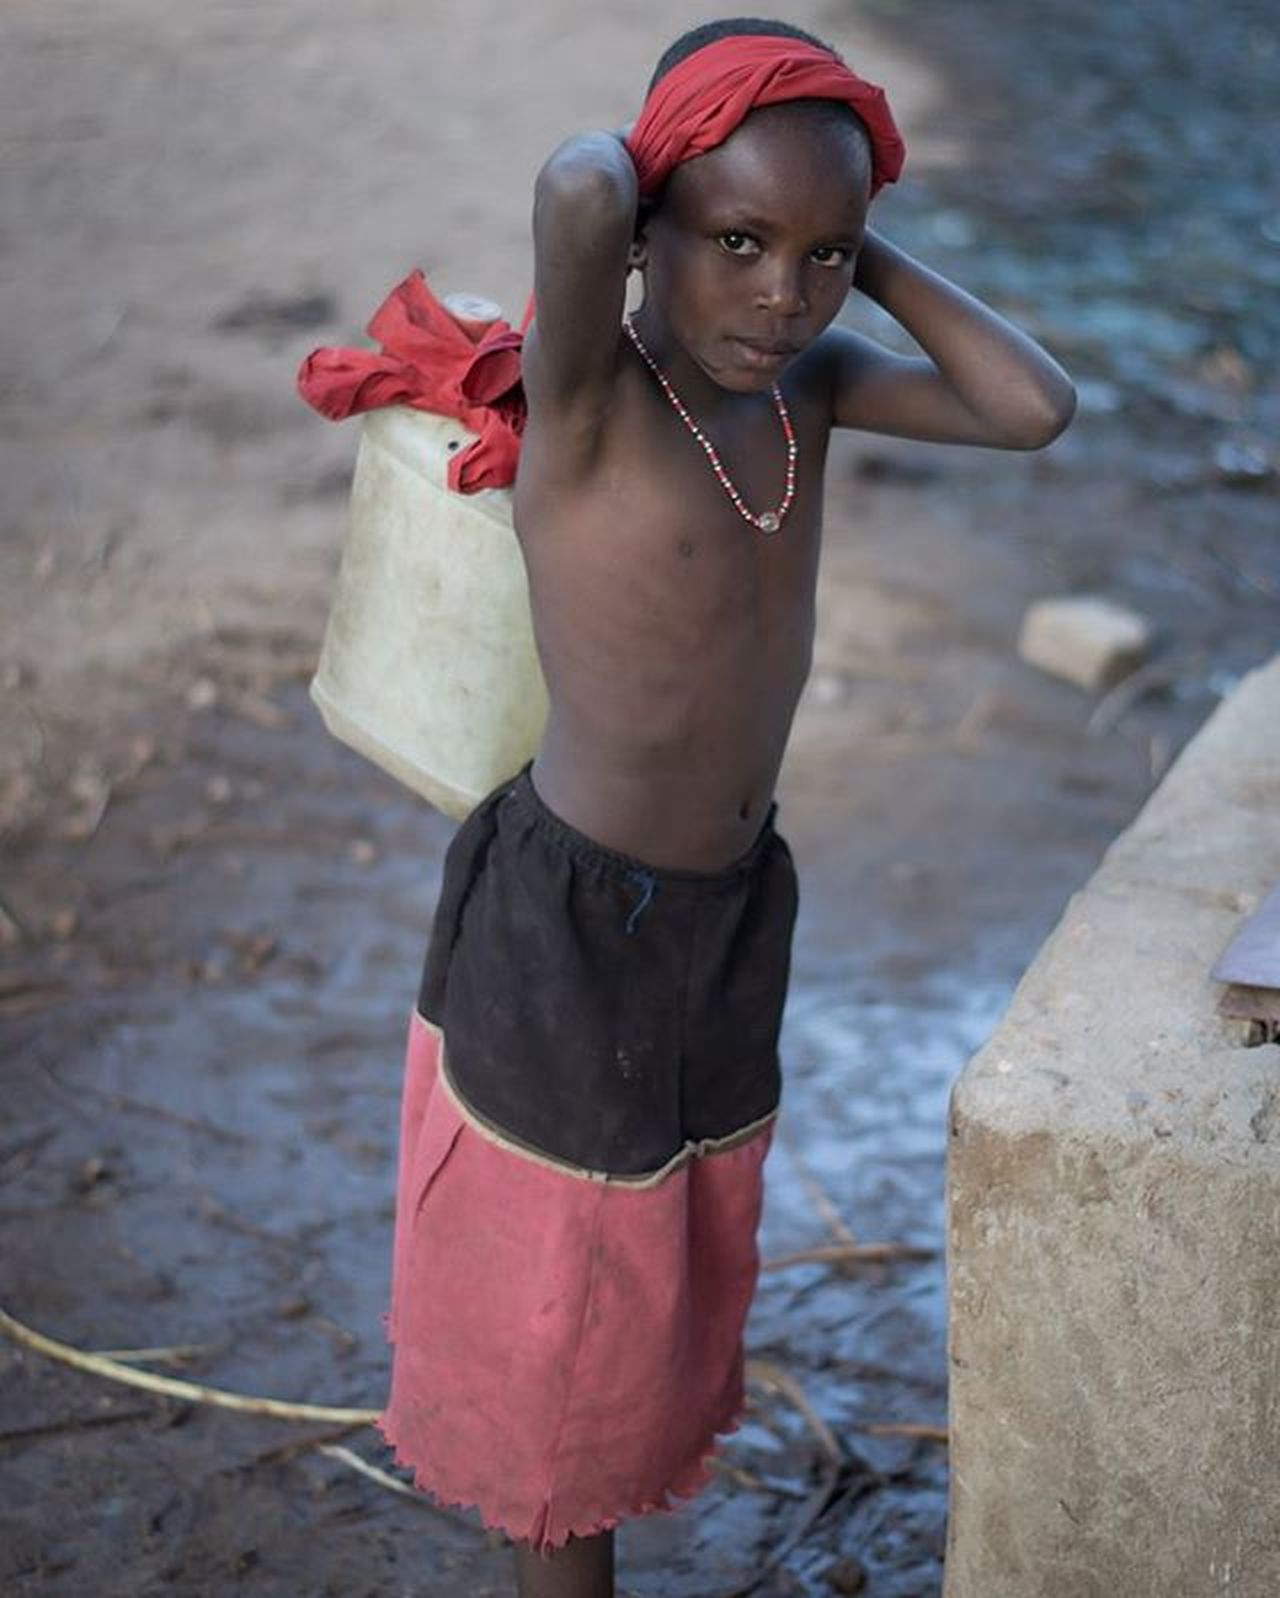 The drought is upon us and it often falls on the kids to carry the water home with mama. This little one doesn't have shoes but is friendly and polite. Dontgiveyourkidseverythingtheyaskfor Waterislife Child Samburu Kenya Africa photooftheday igkenya nomad desert wearespoiled